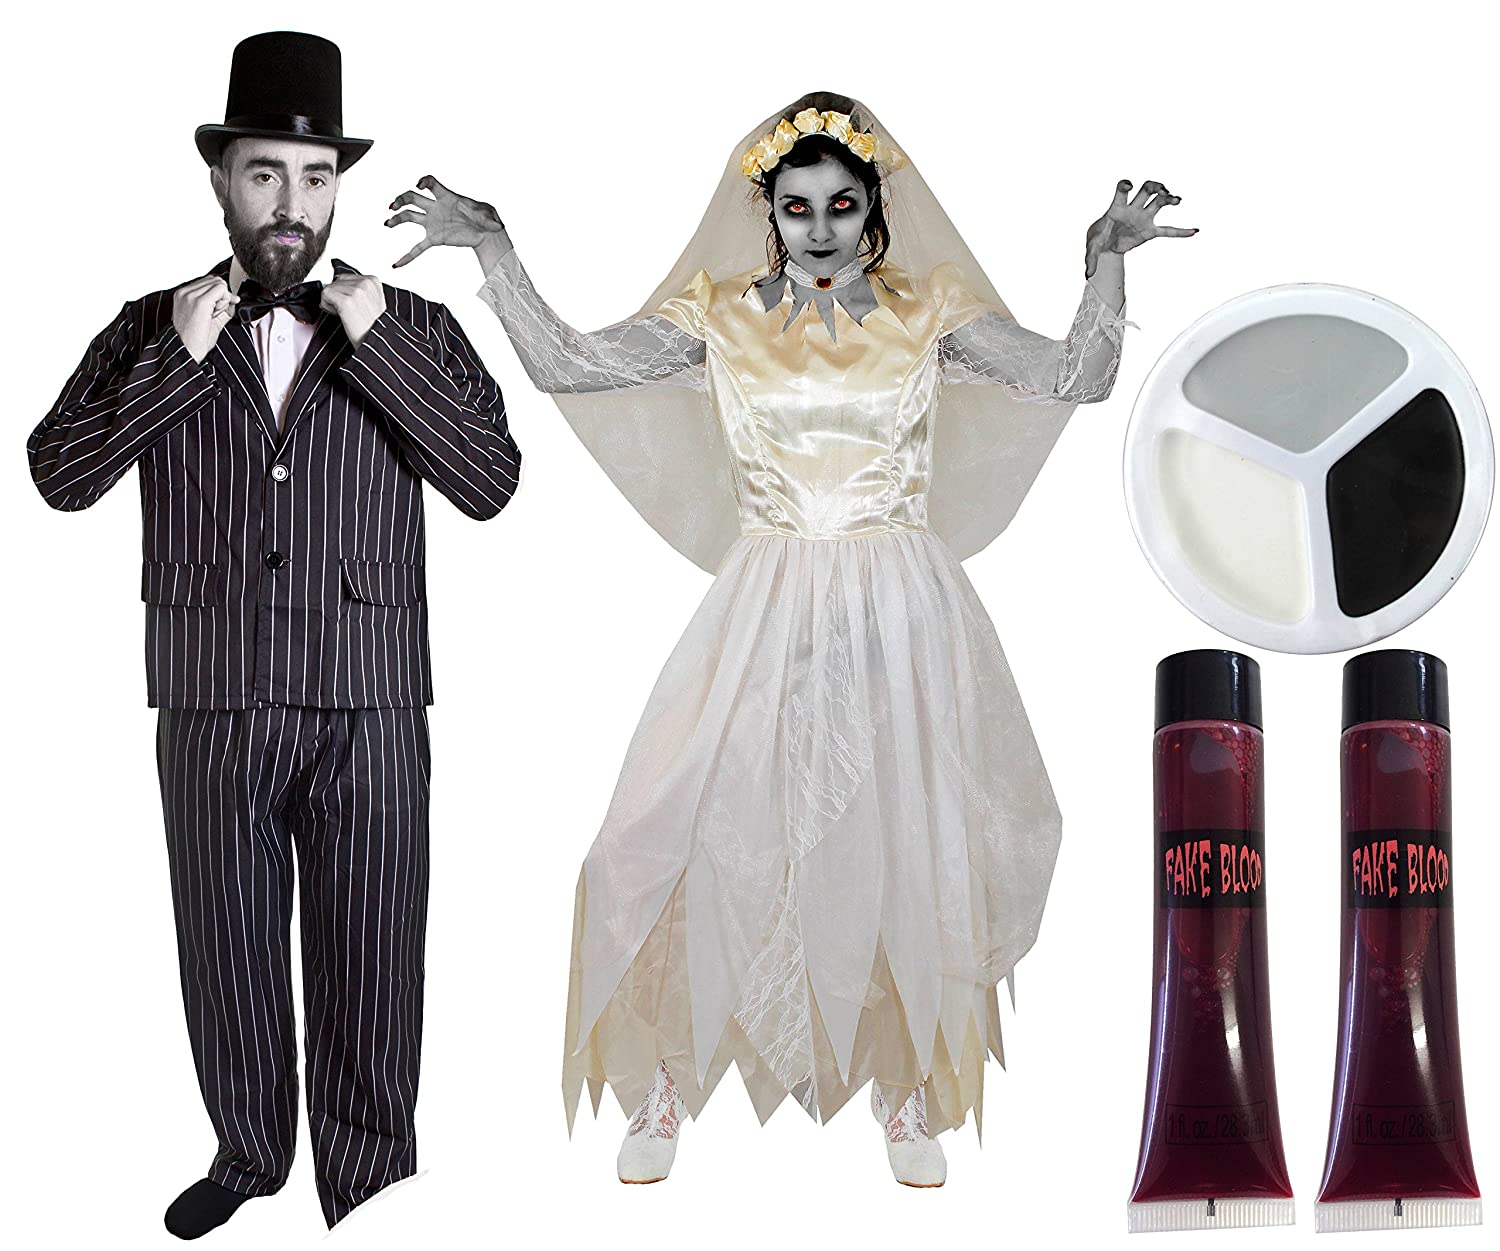 Bride And Groom Halloween Costume.Couples Dead Bride Groom Halloween Fancy Dress Costume Mens Pinstripe Suit With Top Hat Bowtie Ladies White Wedding Dress Matching Veil With